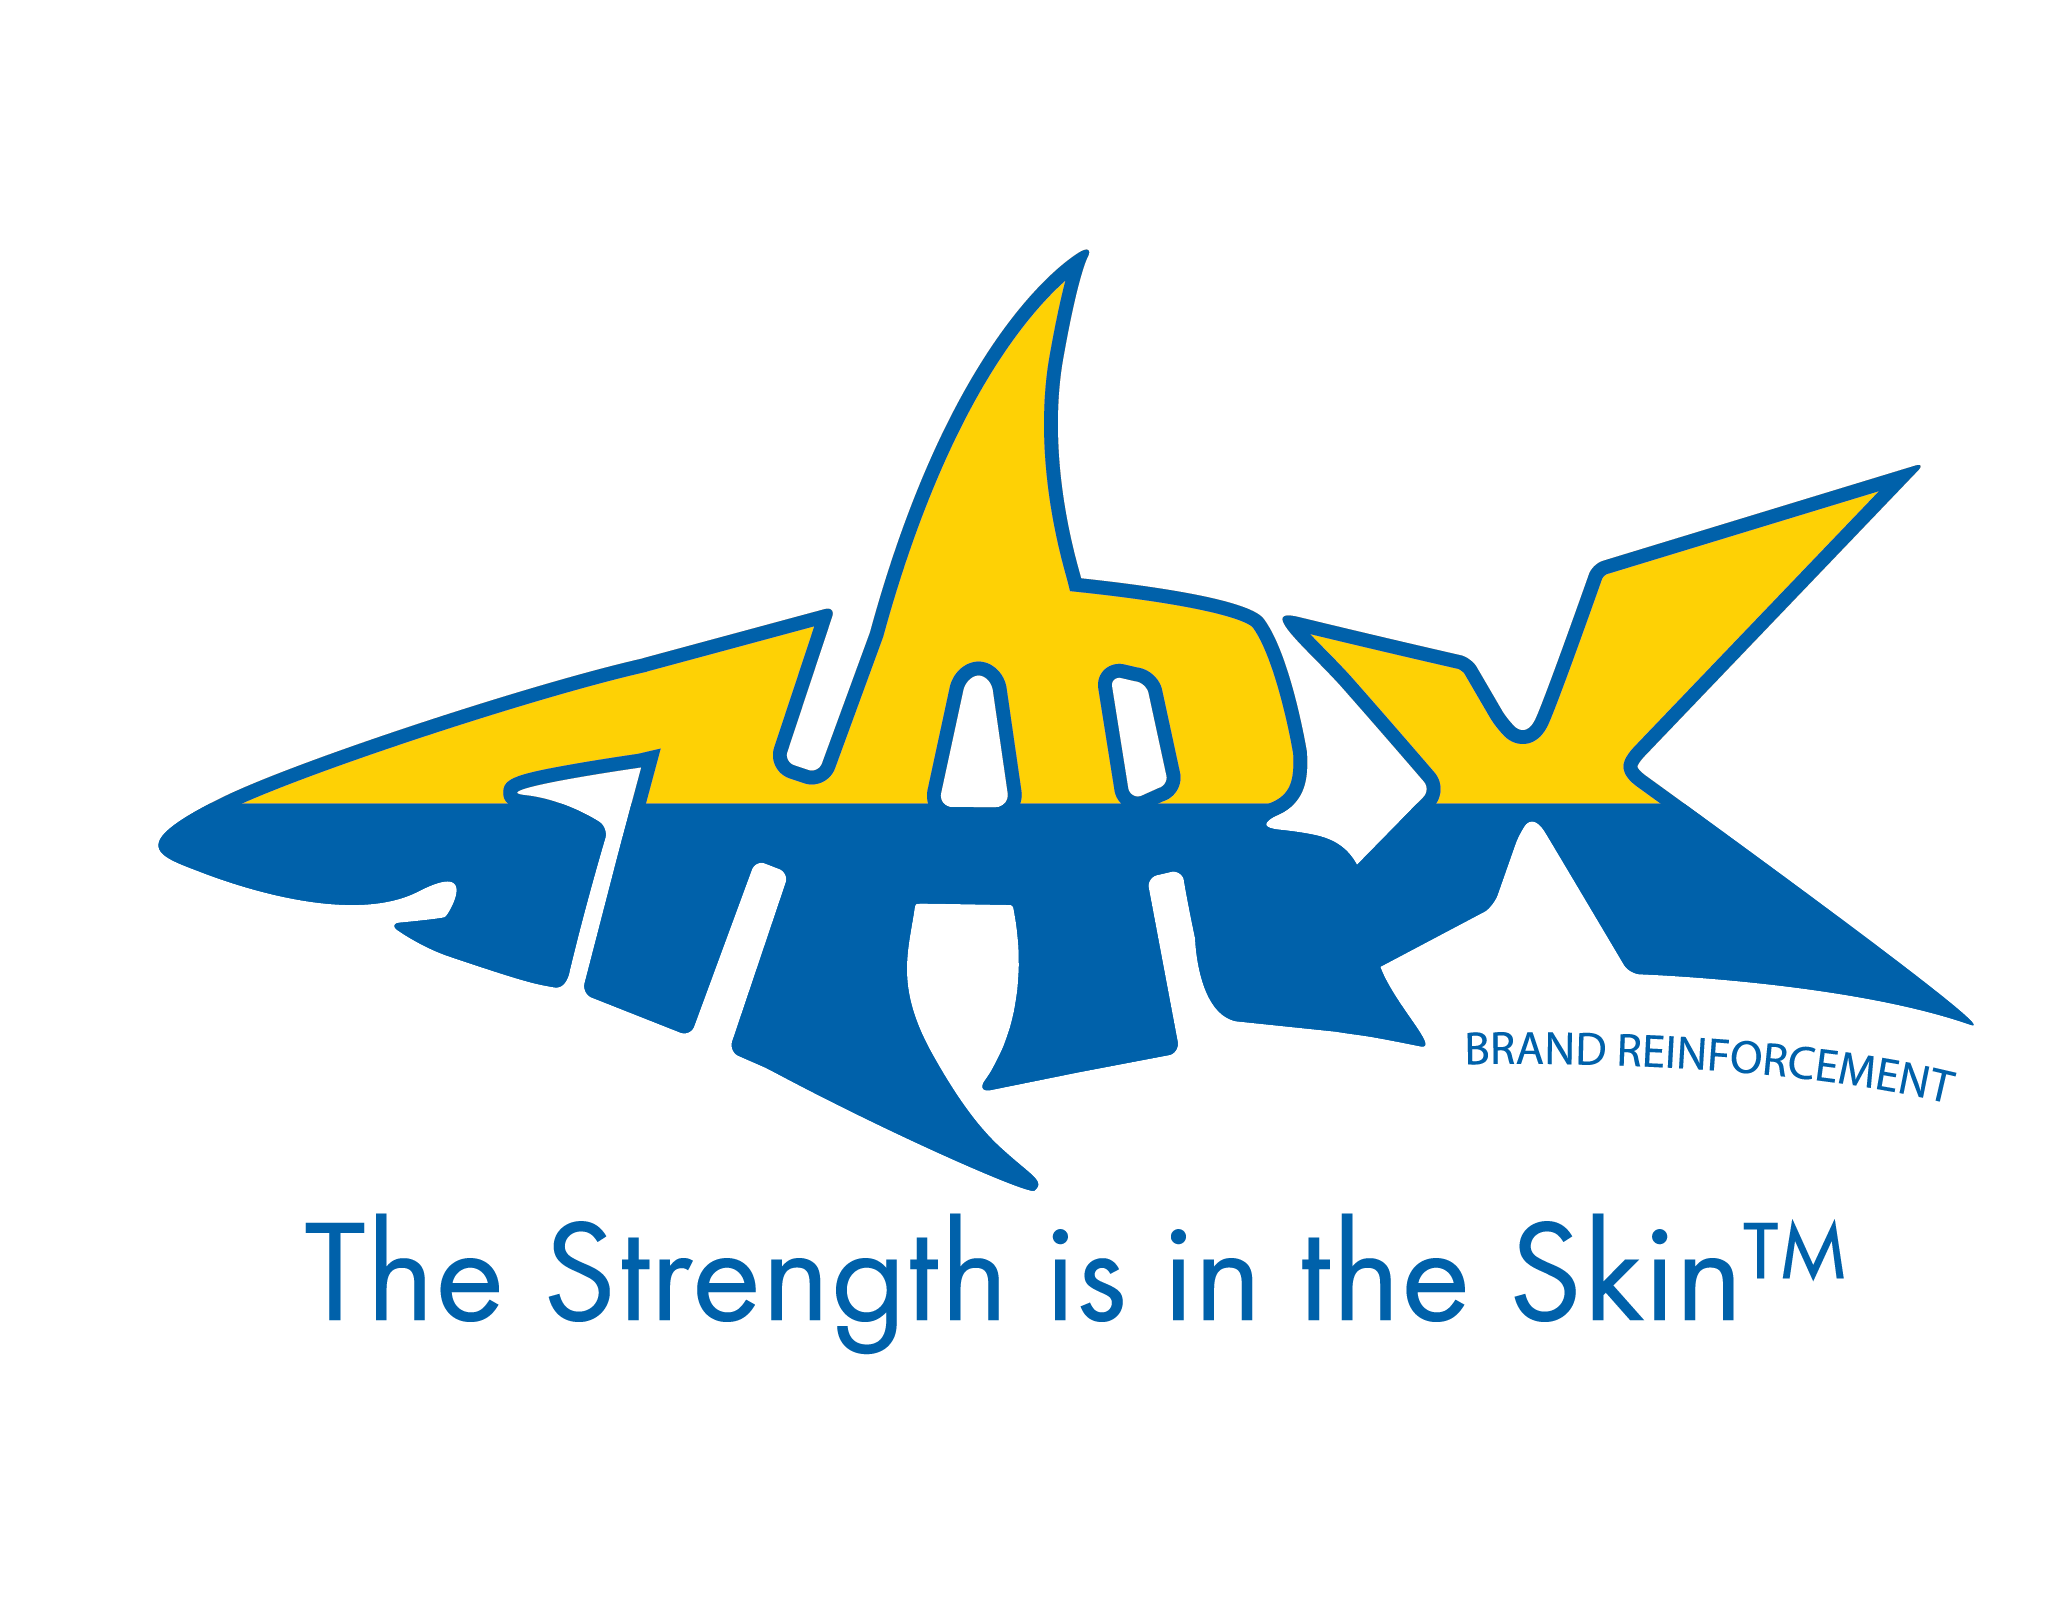 Sharx™ The Strength is in the Skin.™